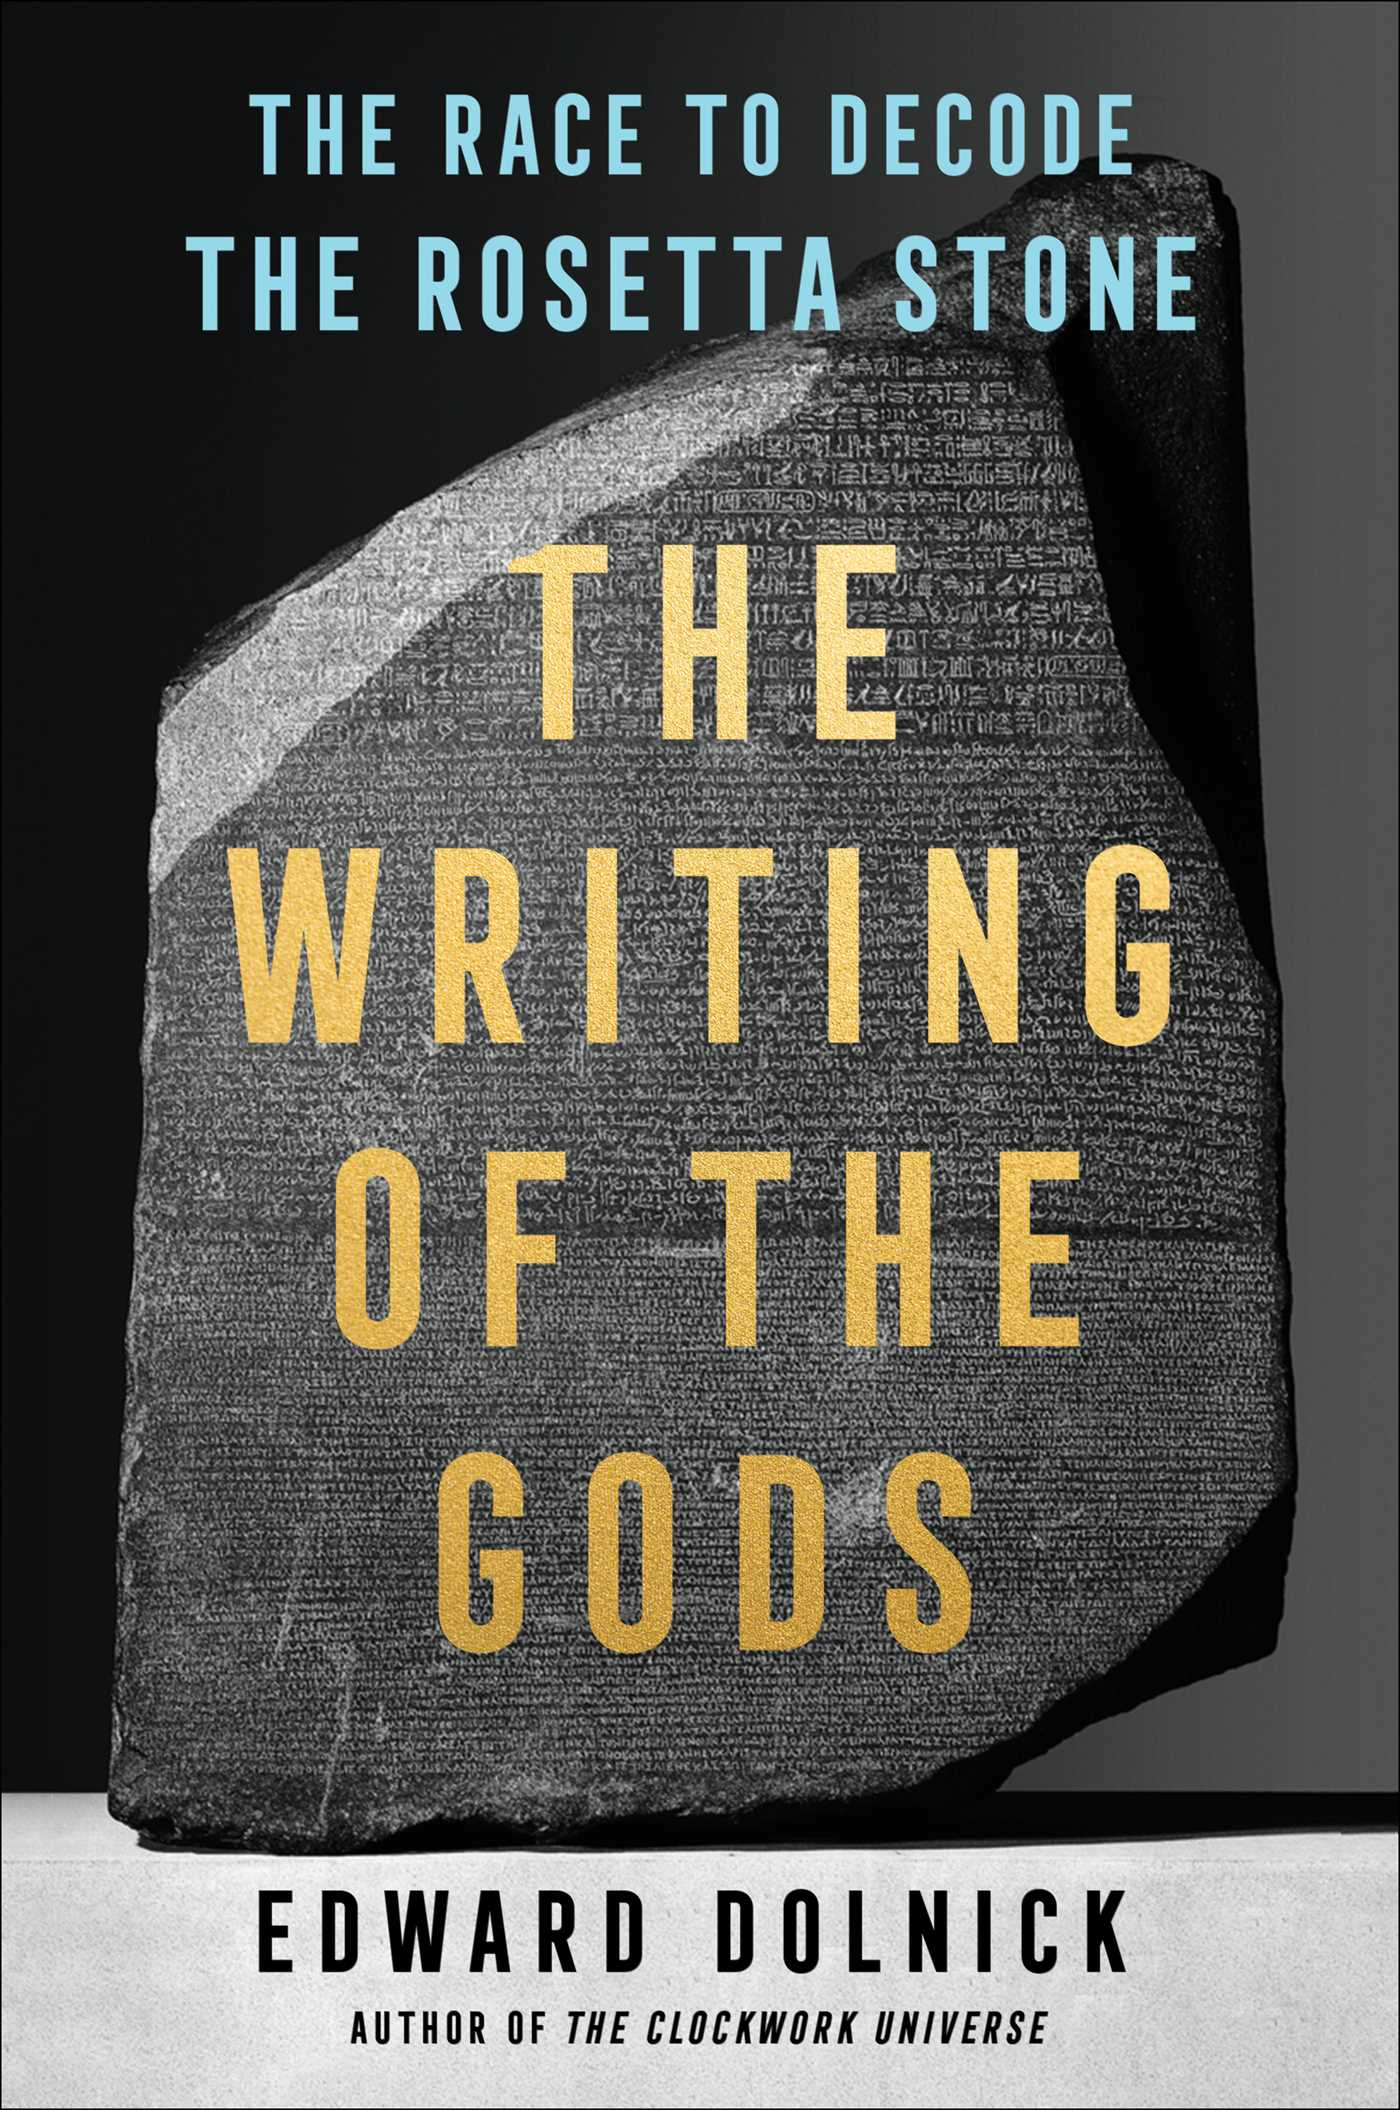 The Writing of the Gods: The Race to Decode the Rosetta Stone by Edward Dolnick